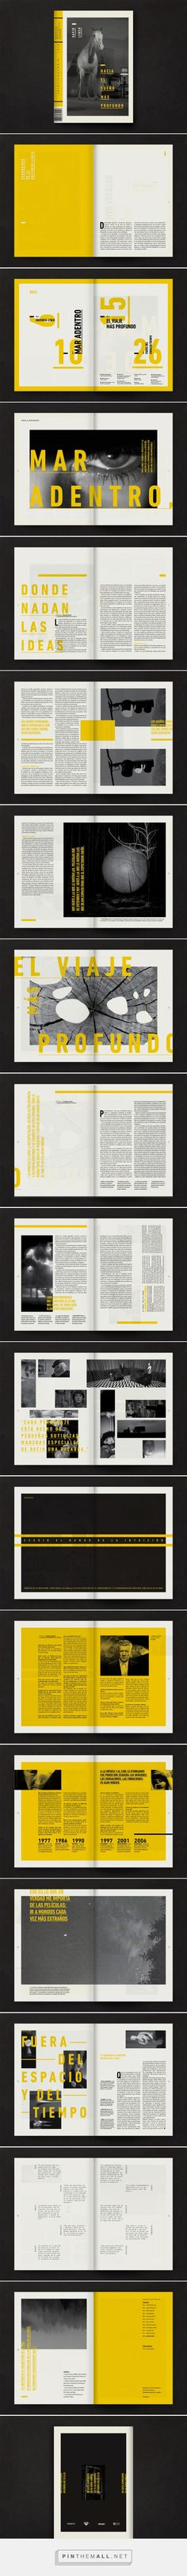 Editorial / David Lynch by Juan Pablo Dellacha Editorial Design Layouts, Magazine Layout Design, Book Design Layout, Print Layout, Magazine Layouts, Brochure Indesign, Template Brochure, Design Brochure, Booklet Design